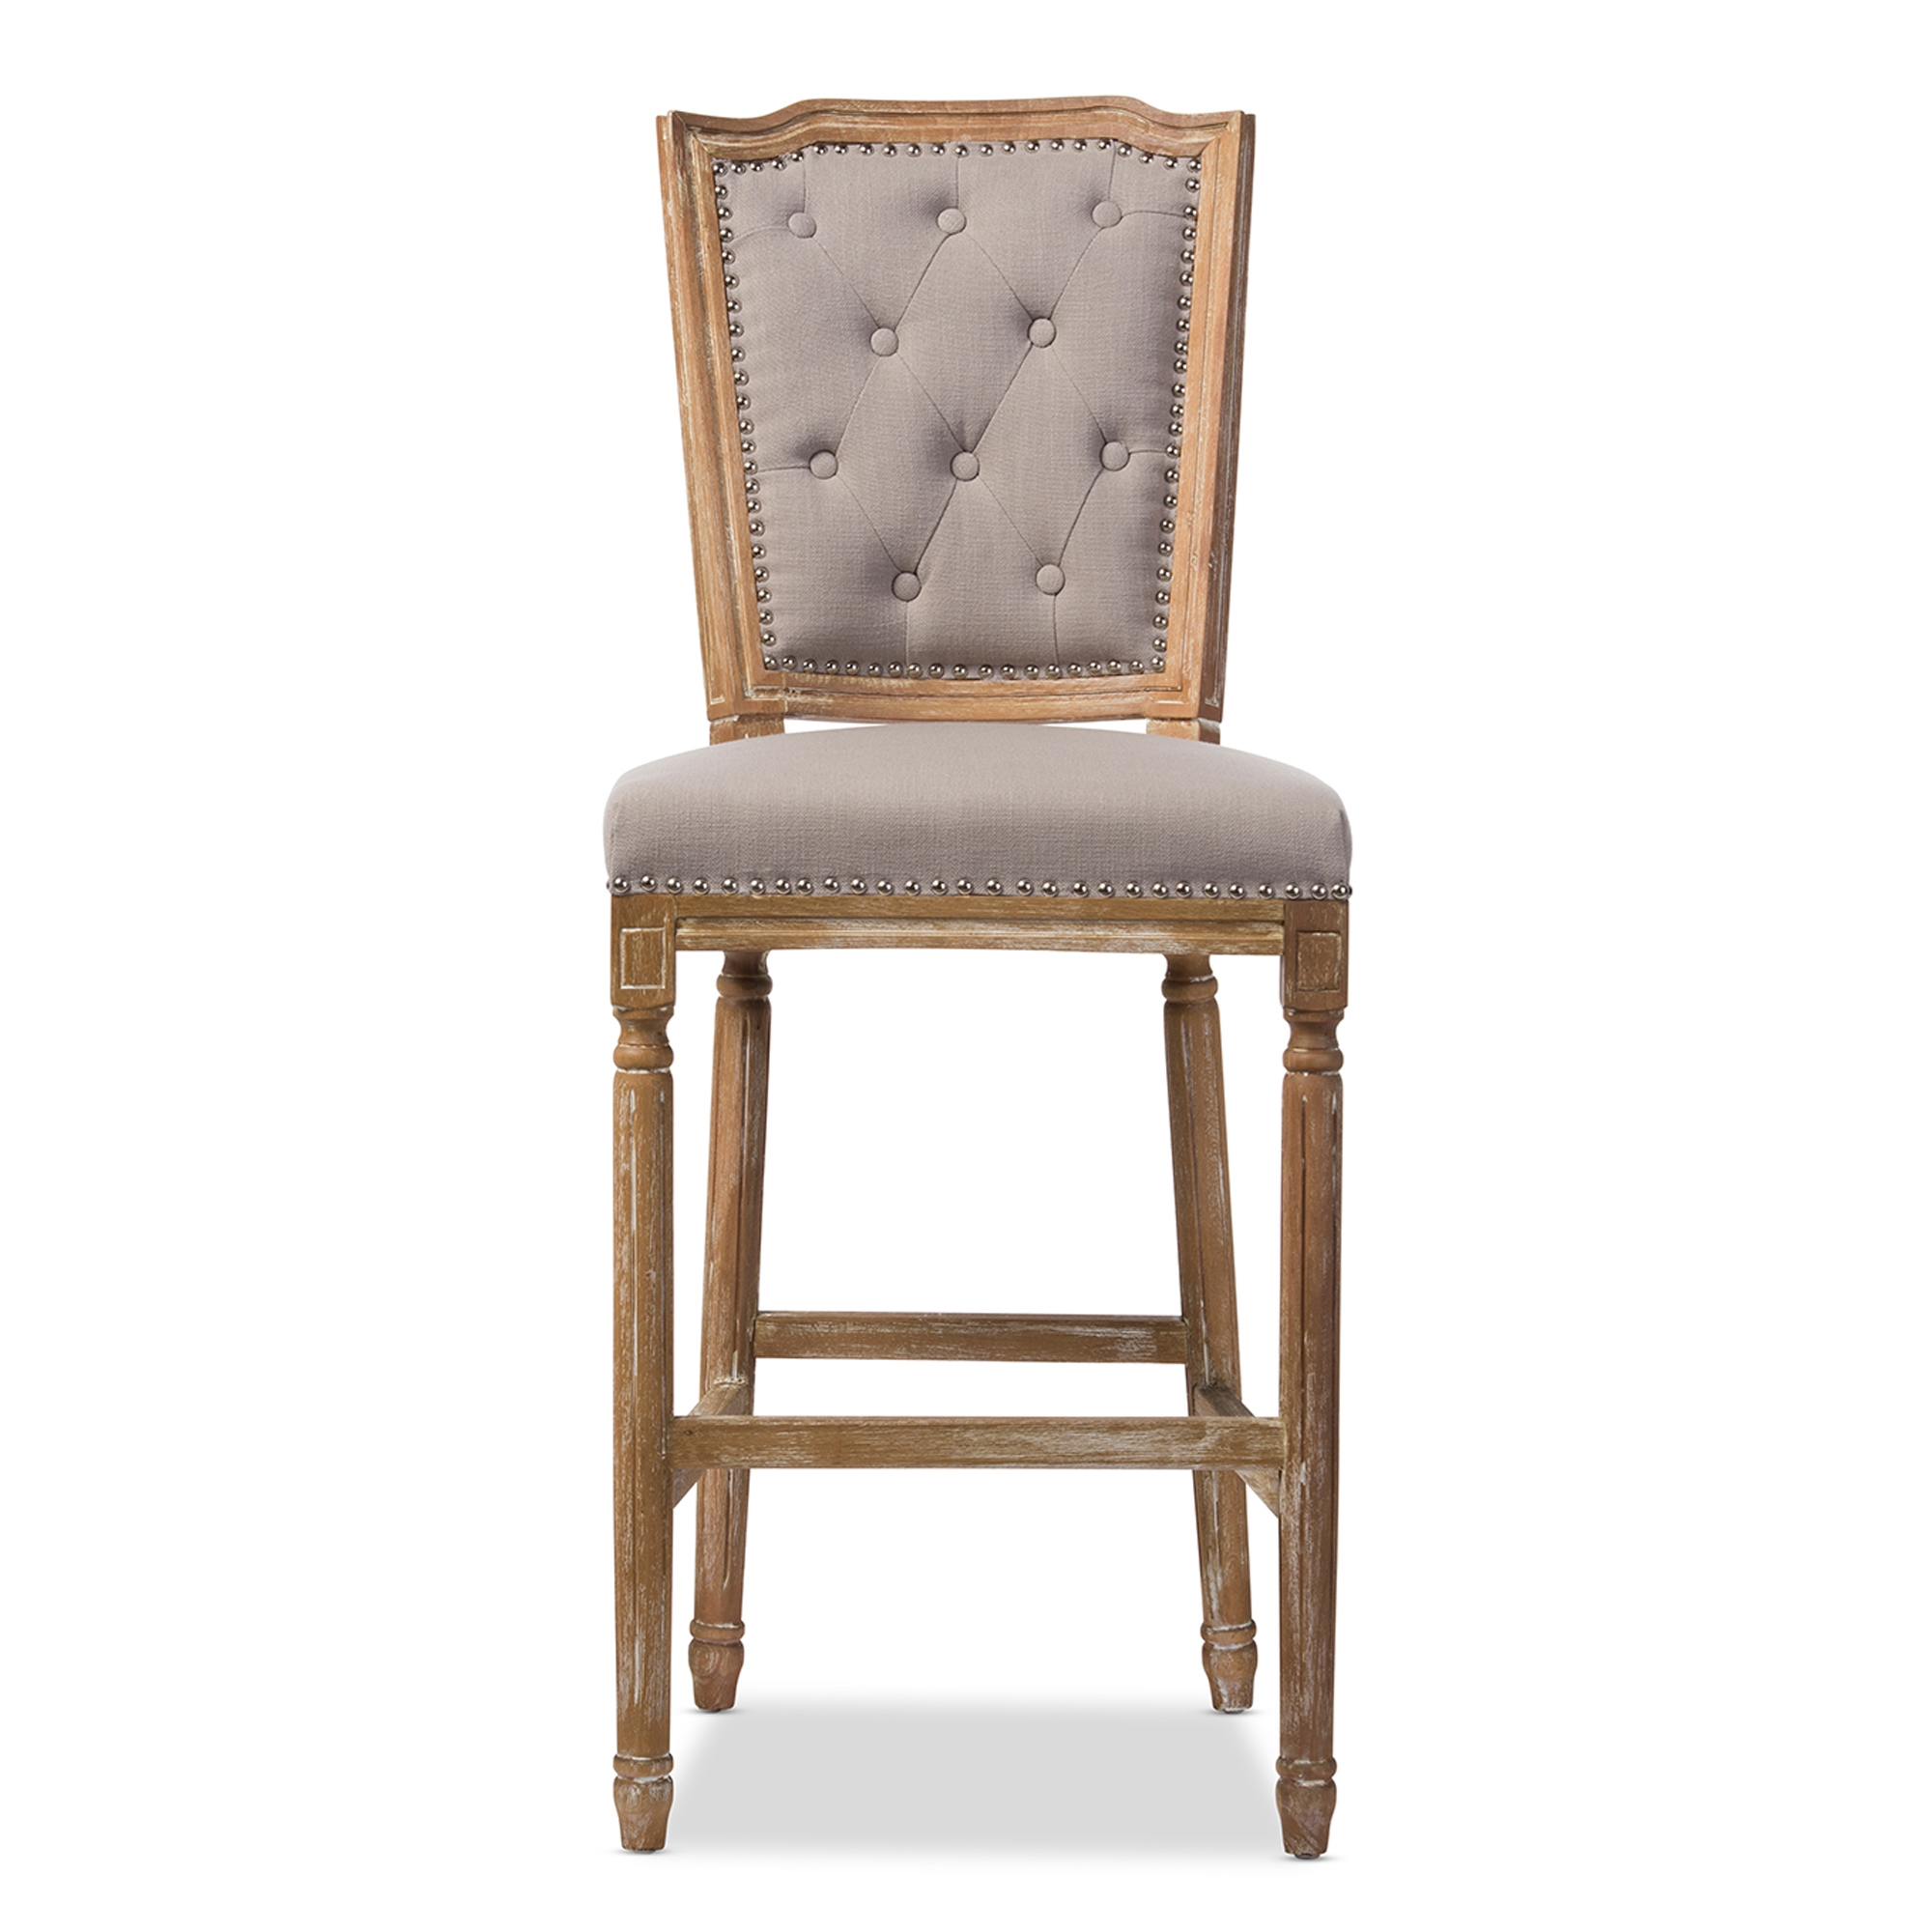 upholstered hooker silo stool iteminformation curata room stools dining dkw front furniture bar